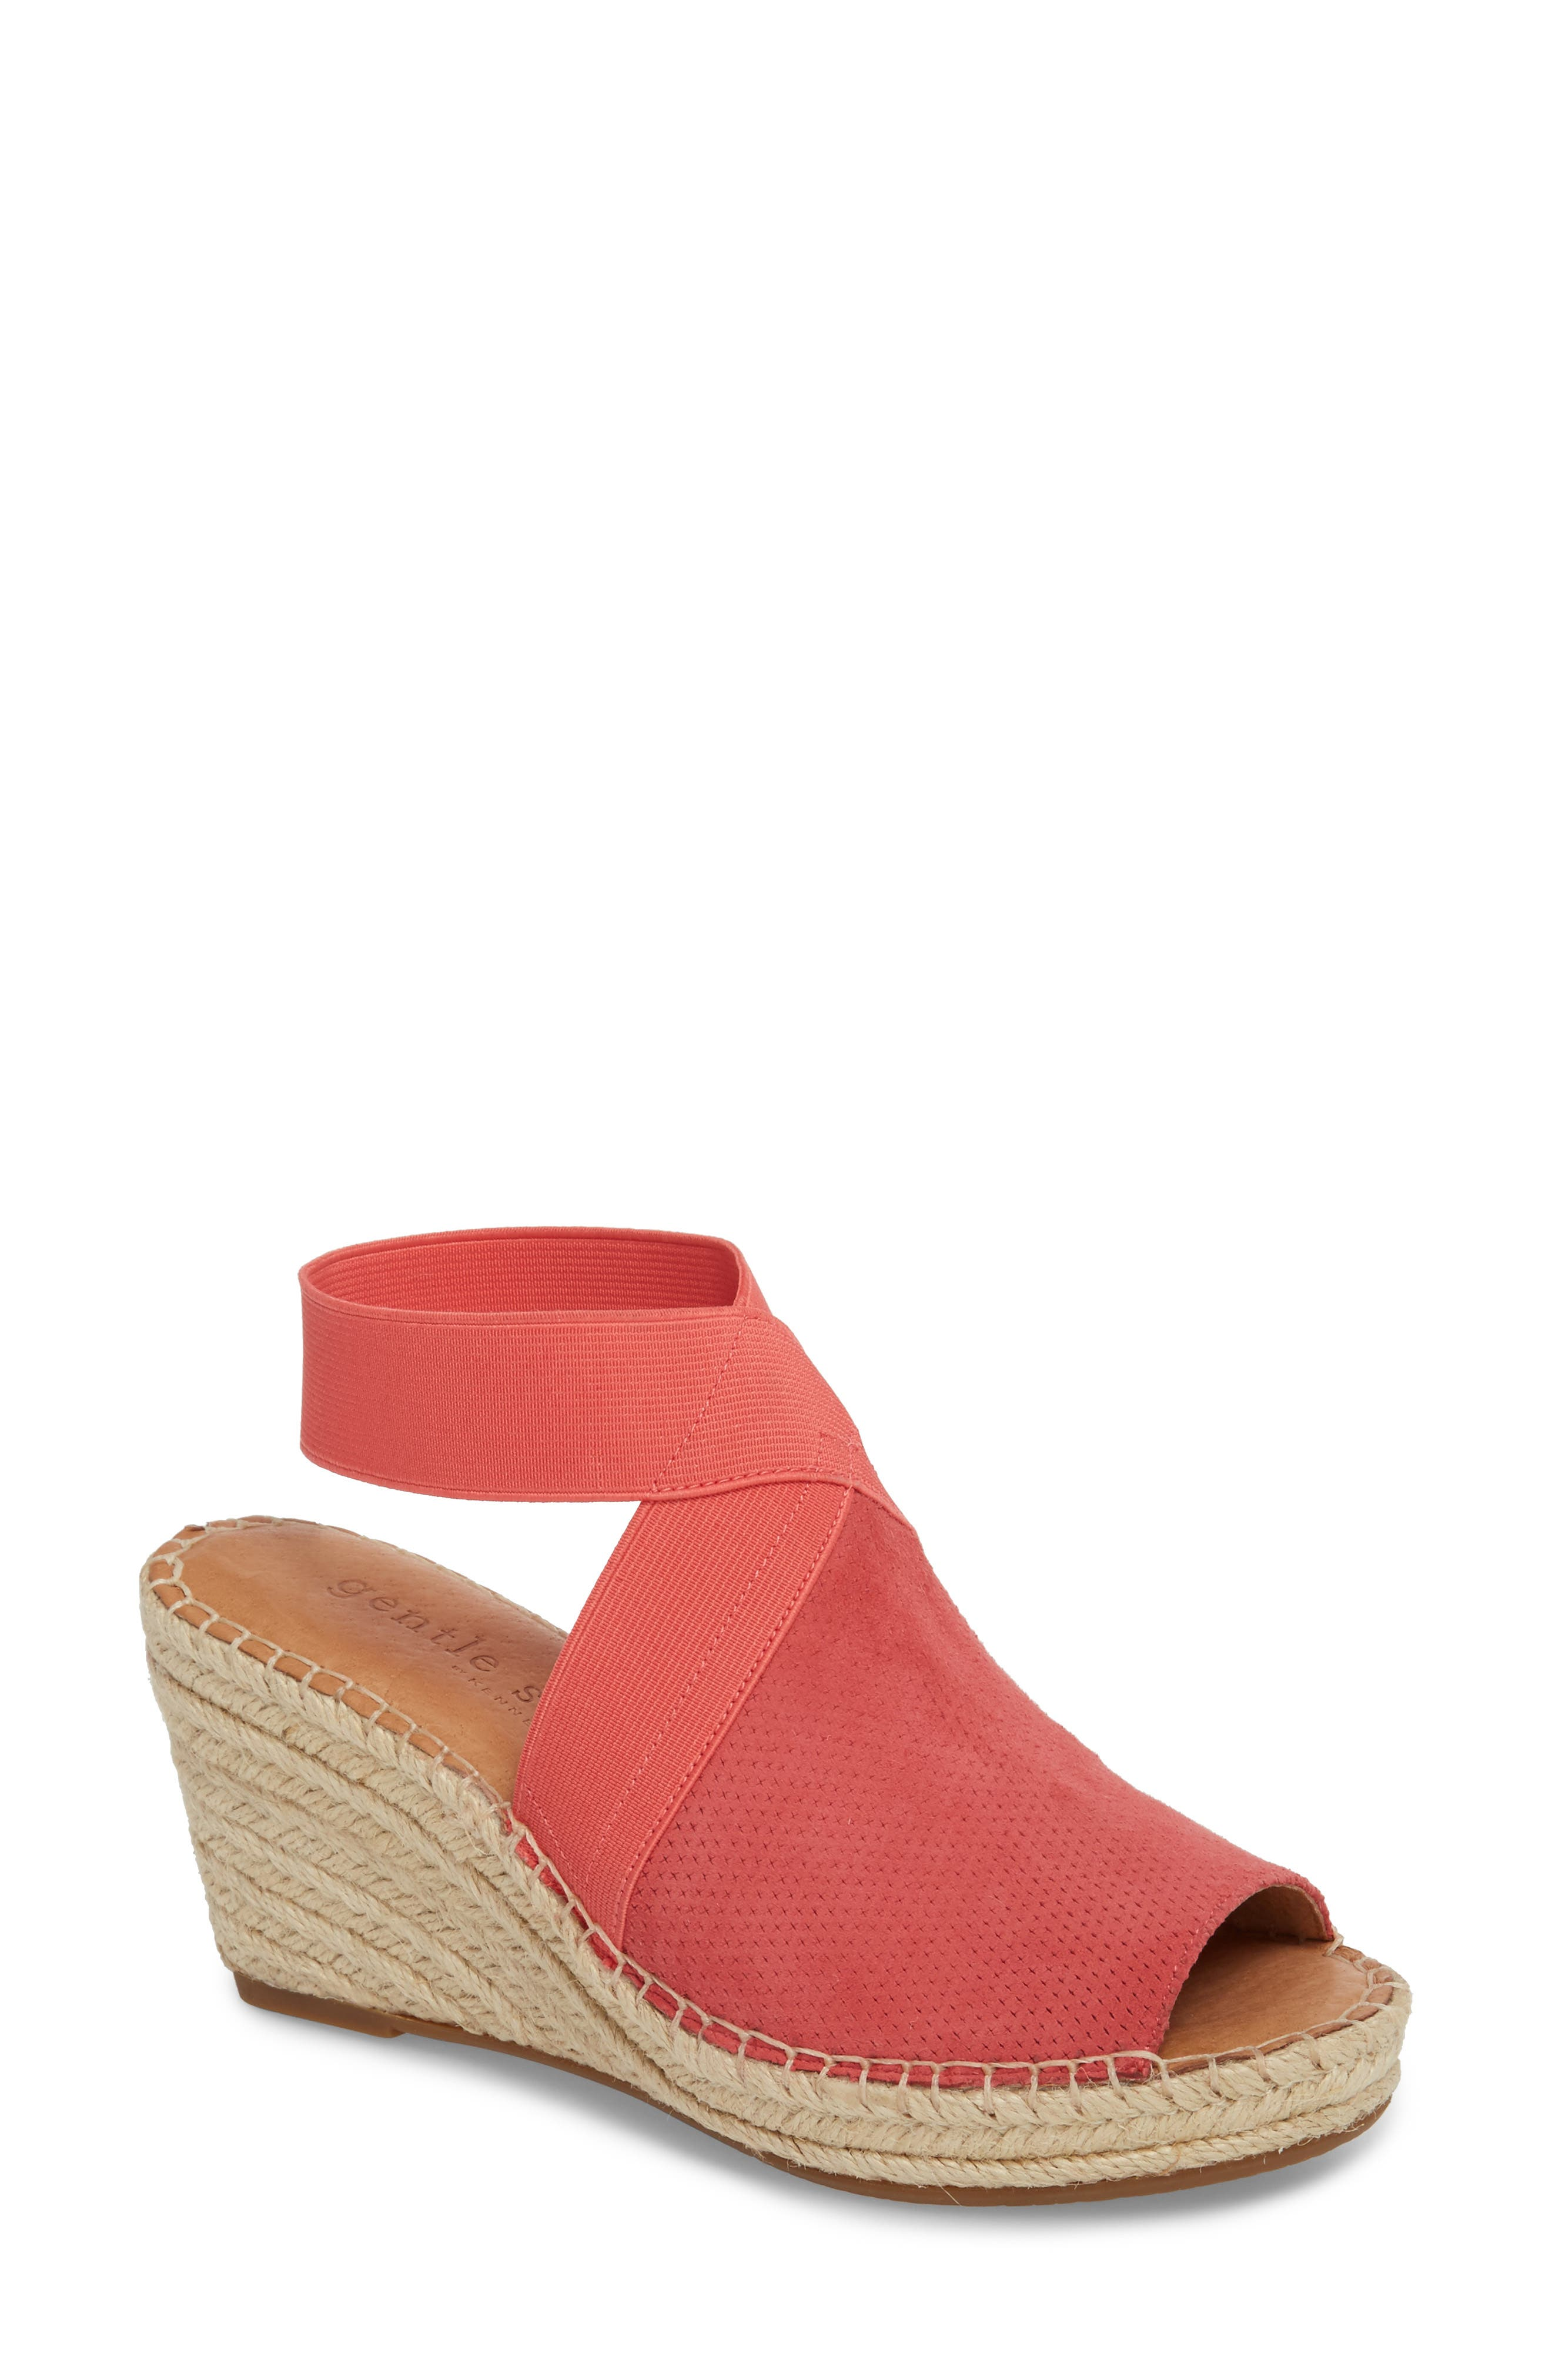 BY KENNETH COLE COLLEEN ESPADRILLE WEDGE